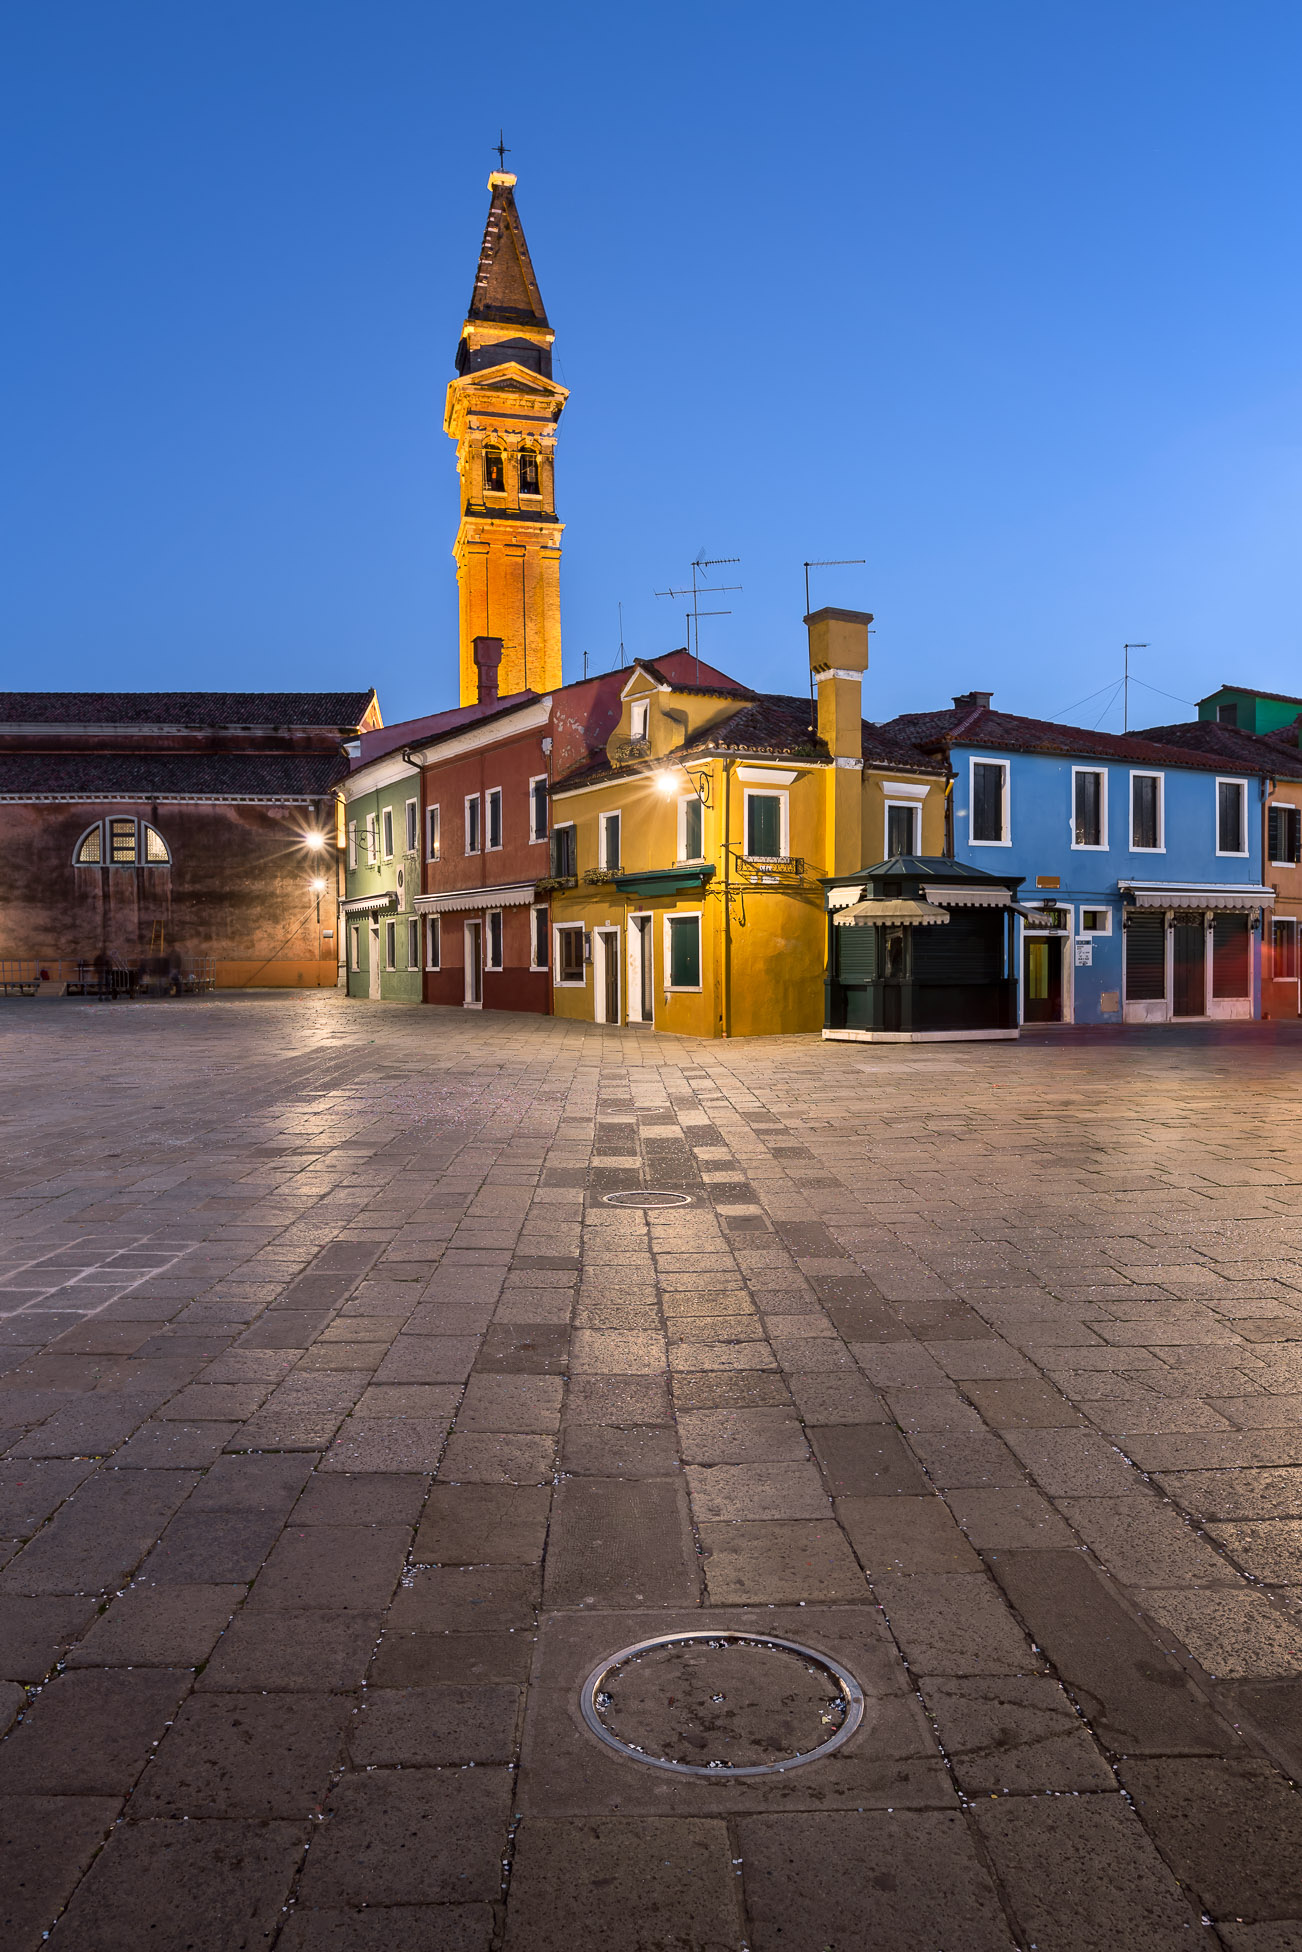 Chiesa di San Martino and Colorful Burano Houses in the Evening, Burano, Veneto, Italy